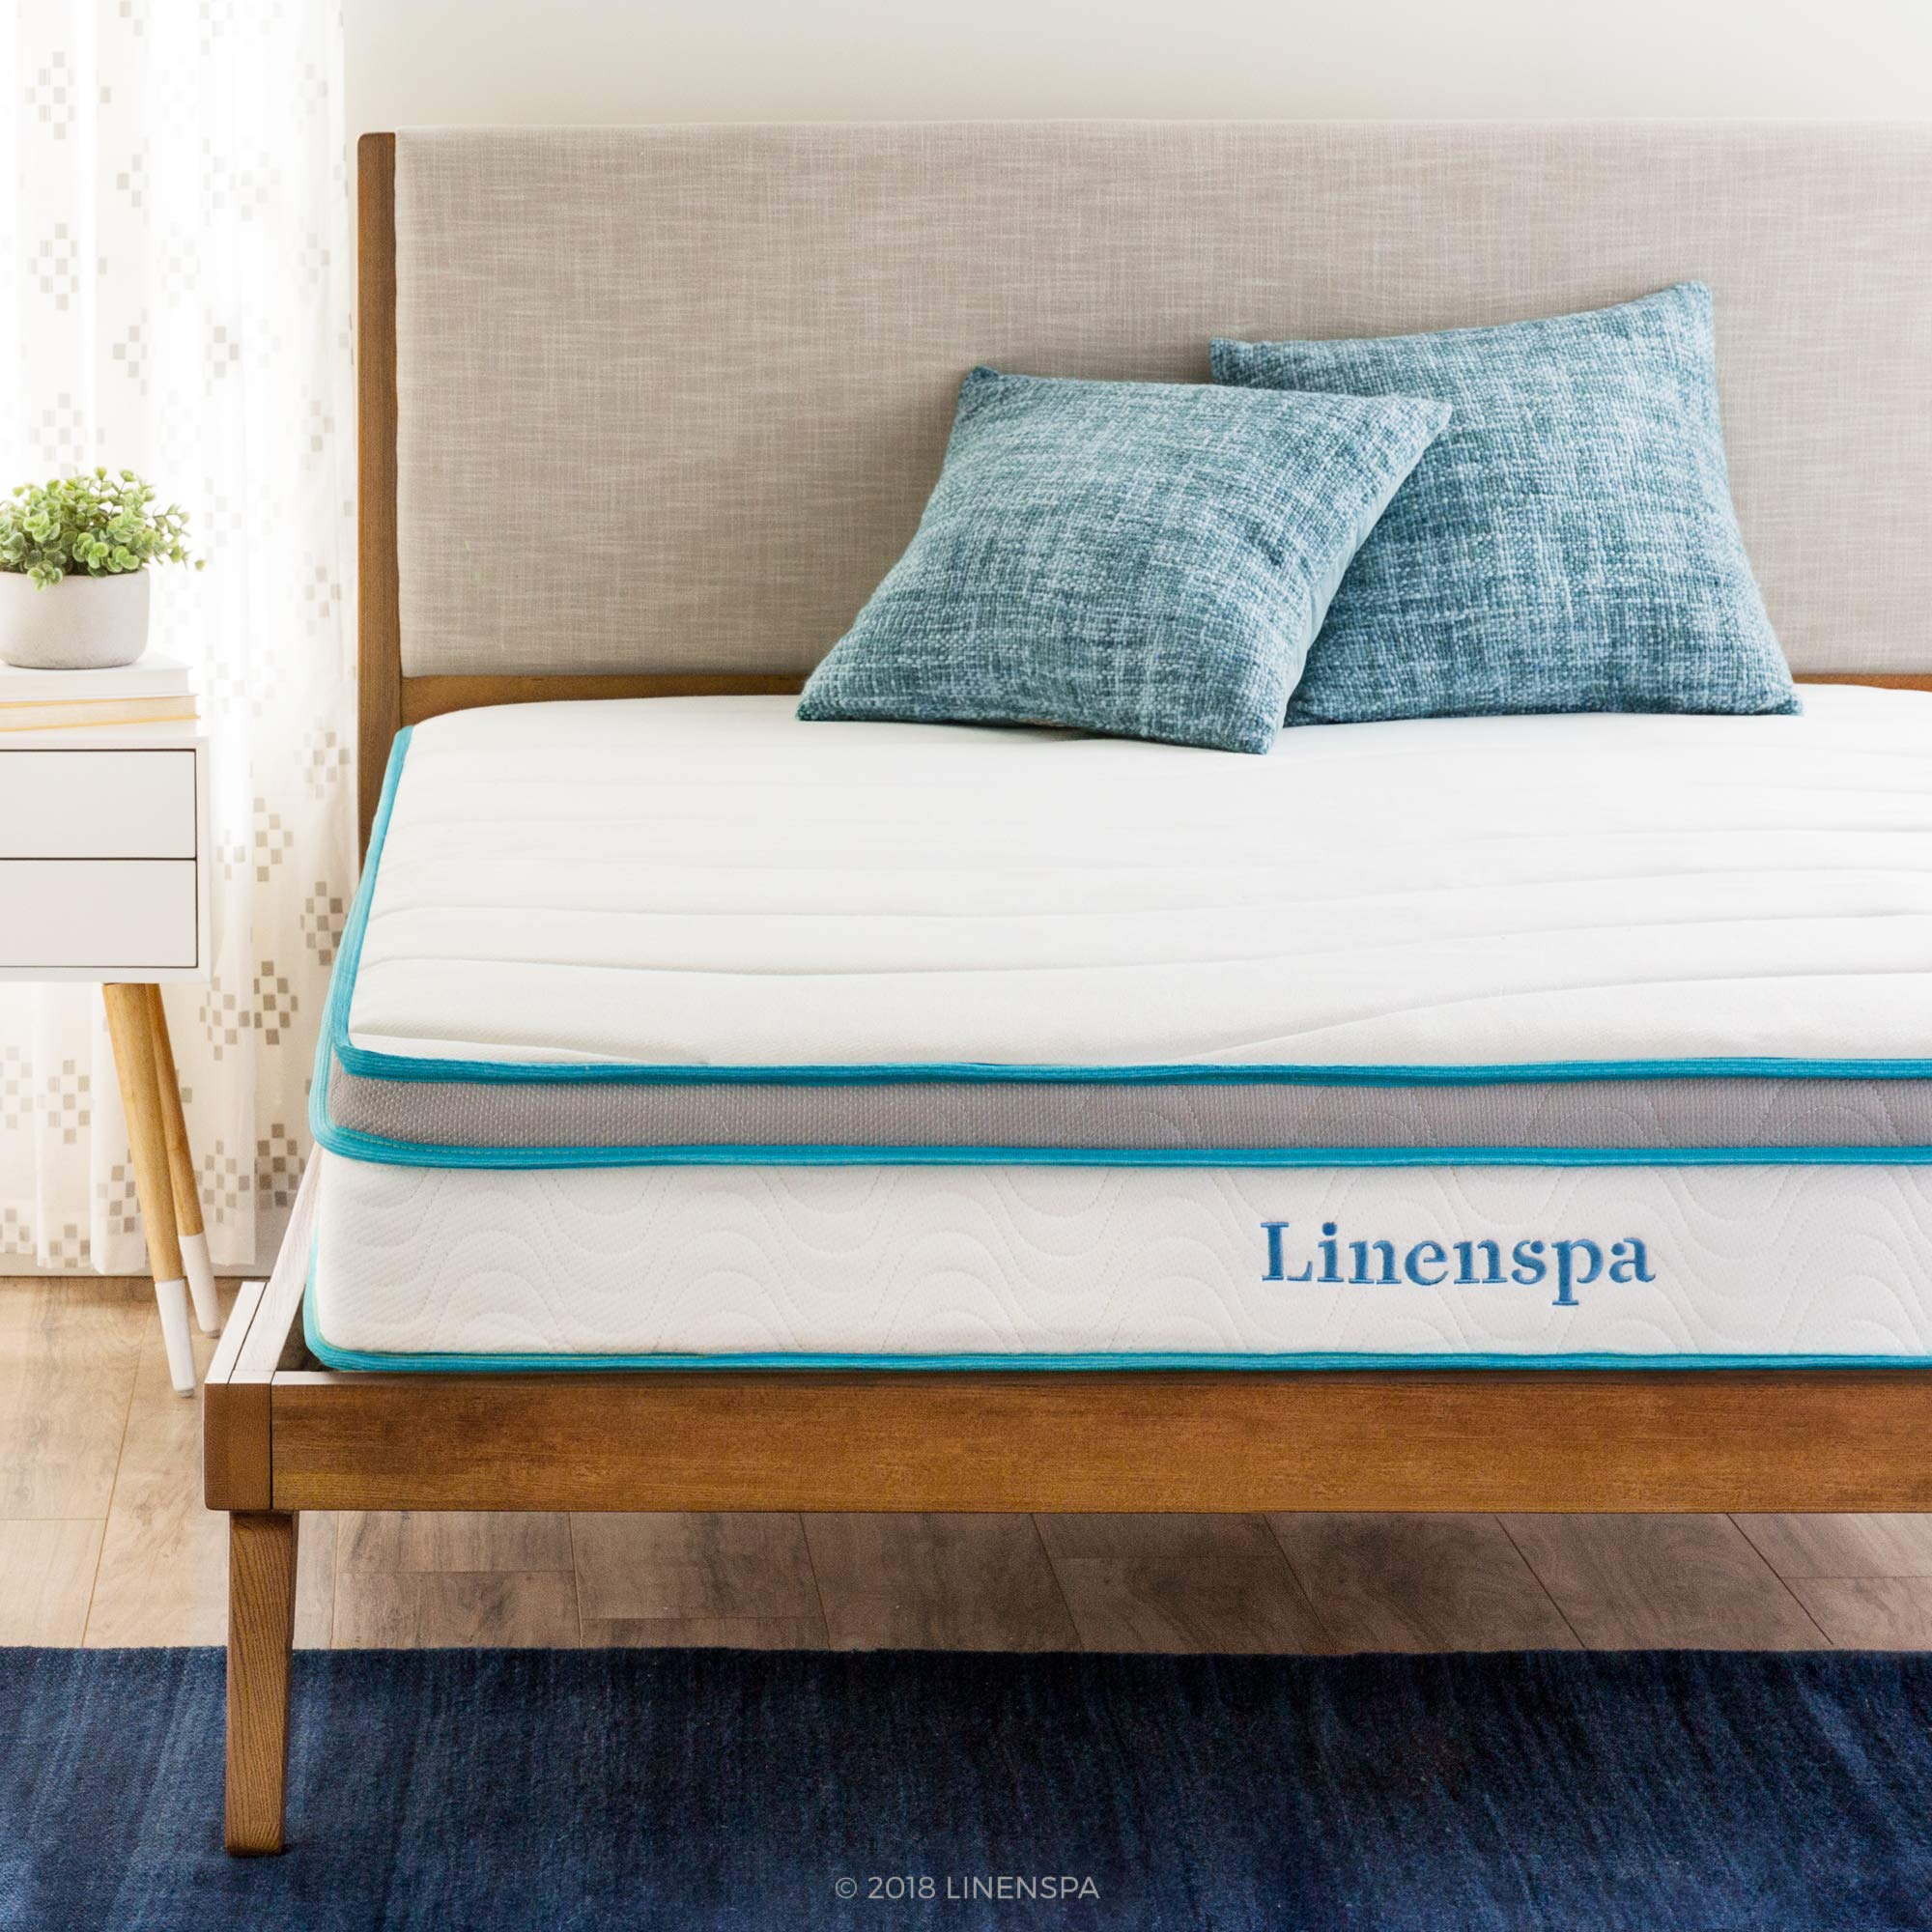 Linenspa 8 Inch Memory Foam and Innerspring Hybrid Mattress - Medium-Firm Feel - Queen by Linenspa